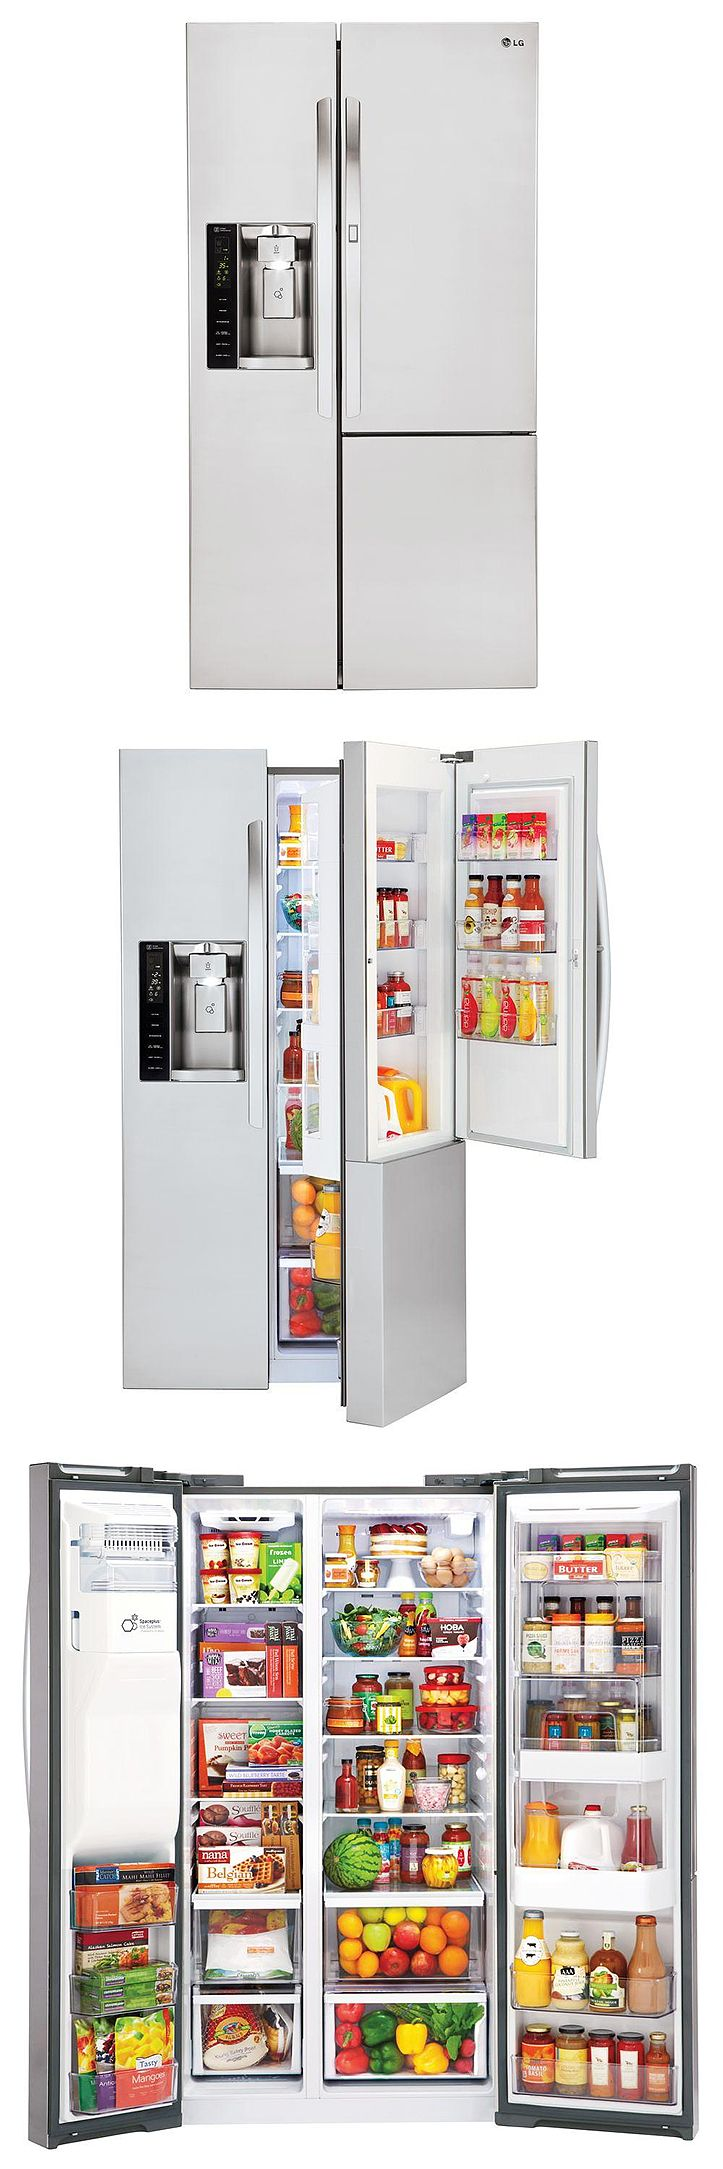 Customers love the door-in-door feature of this side-by-side refrigerator. It comes with convenient slide-out and folding shelving, tilting and adjustable door bins, and multiple crisper drawers and an intuitive LED display.